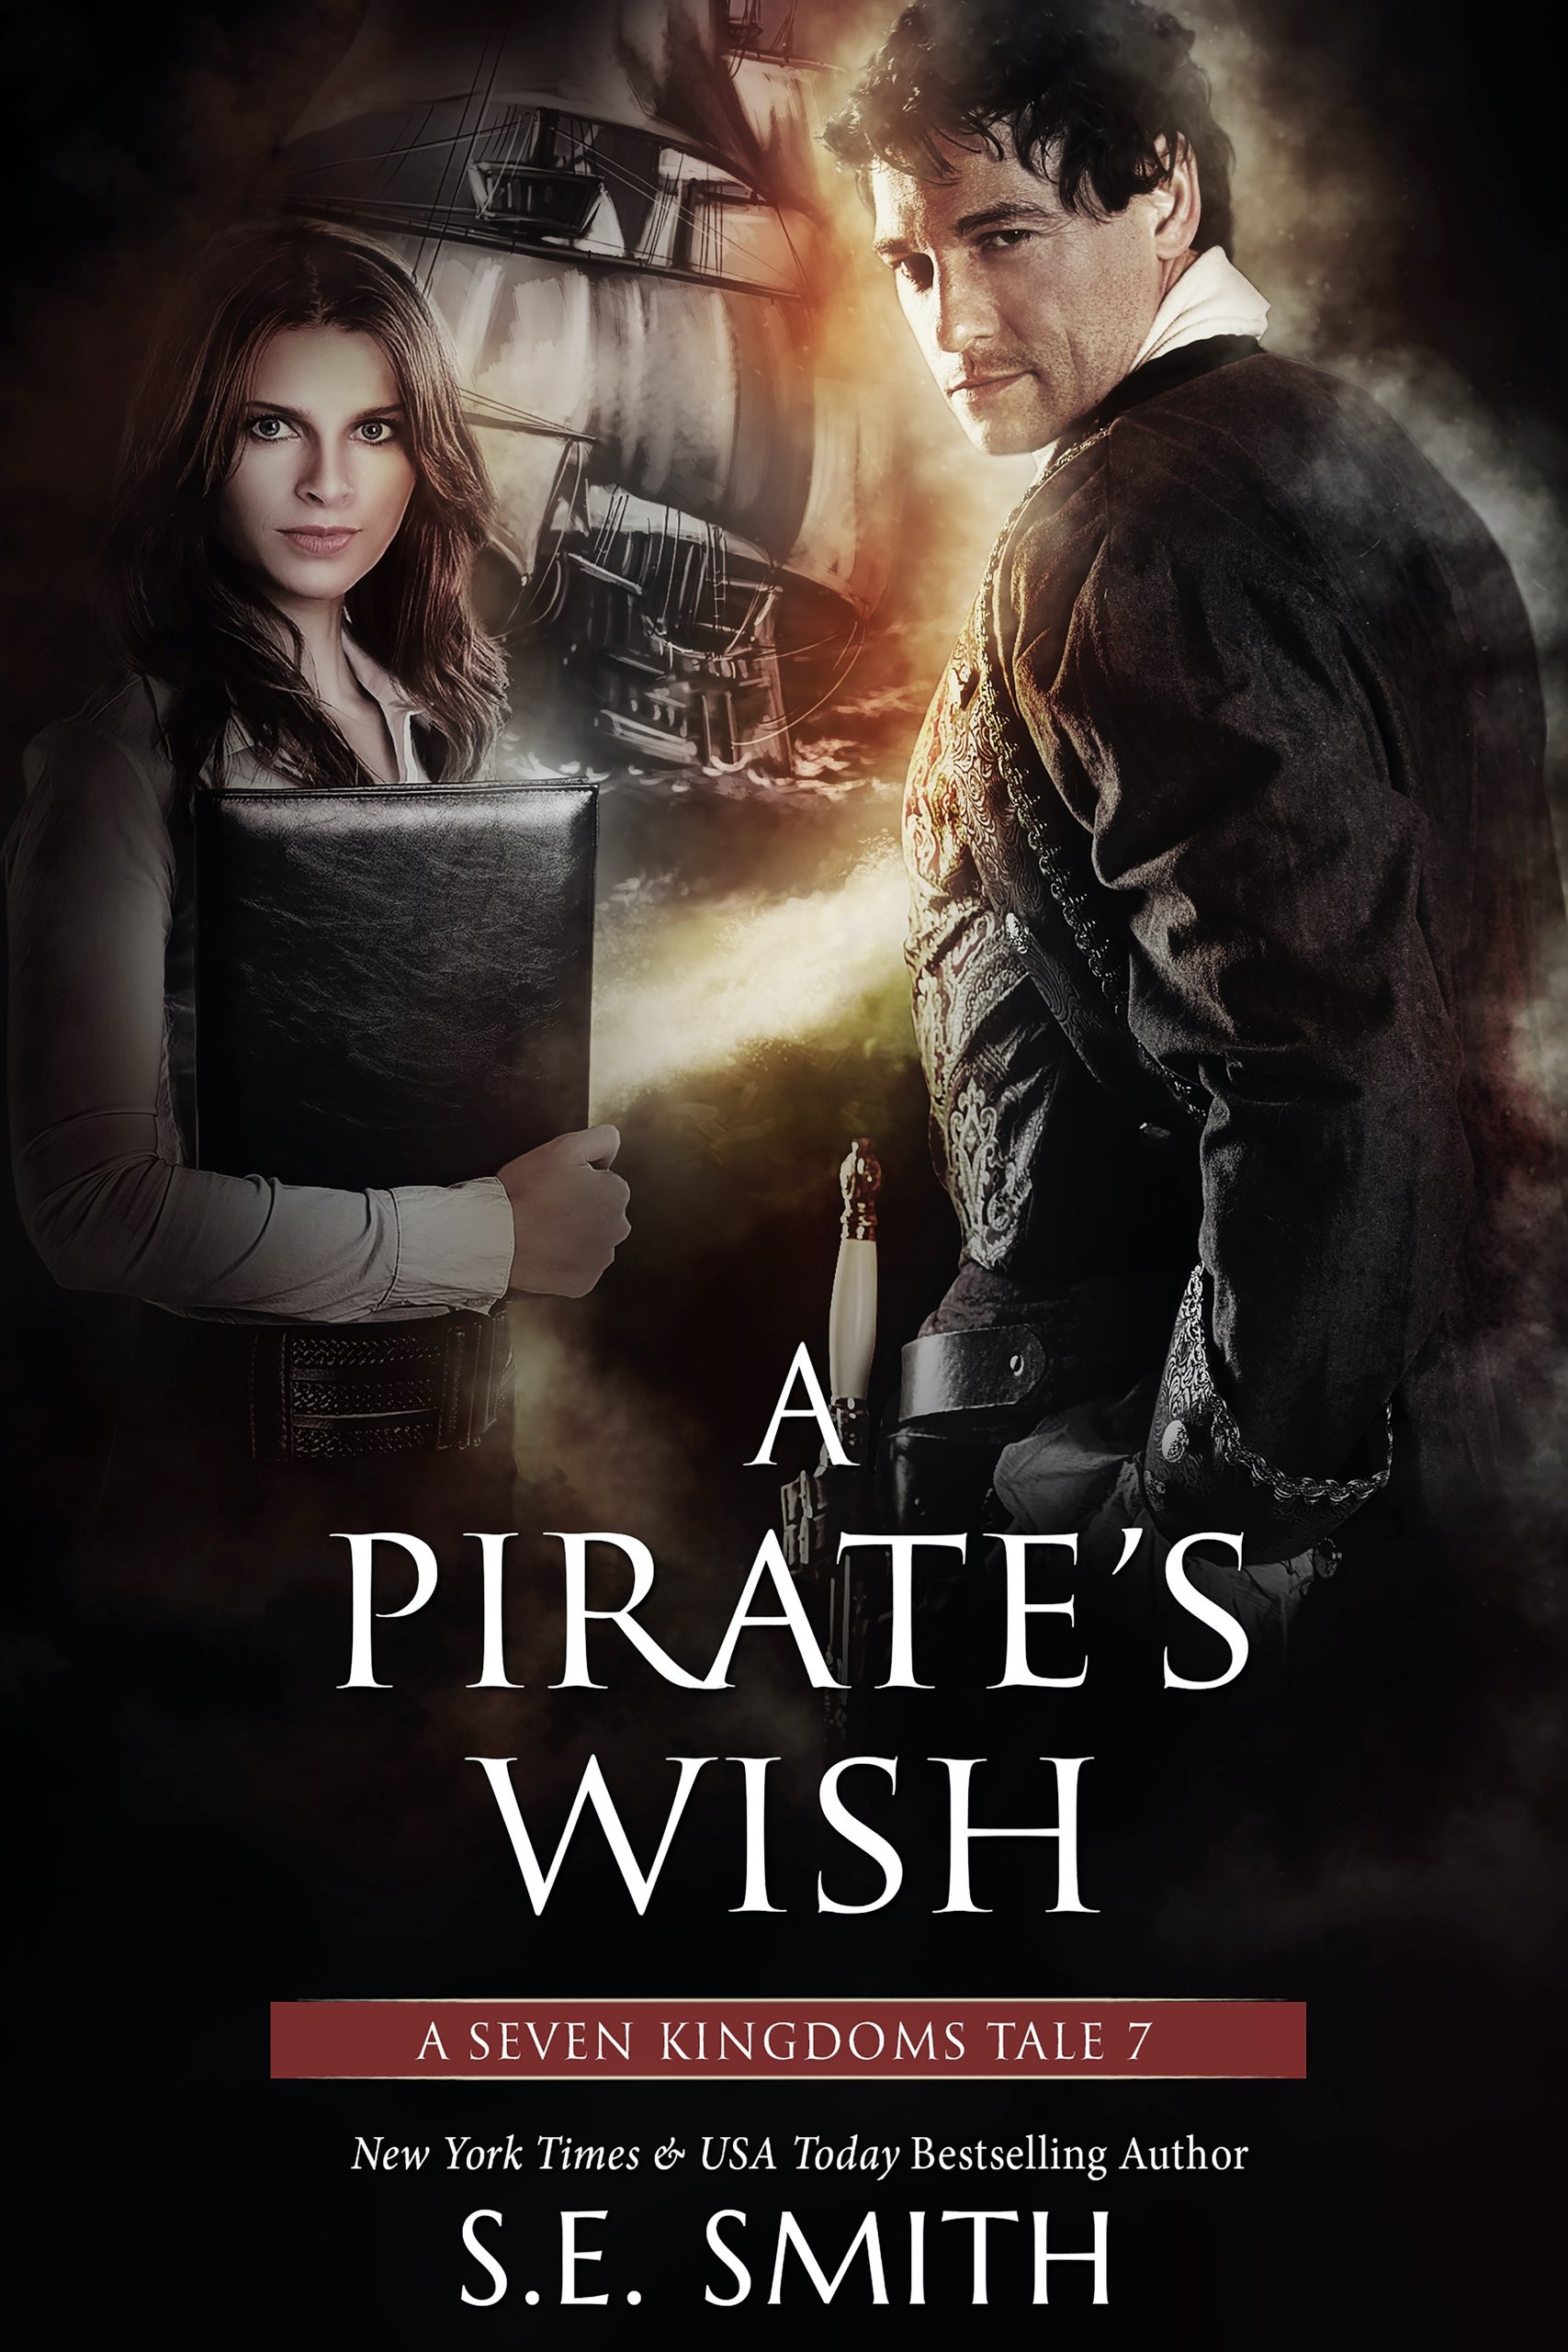 A Pirate's Wish: A Seven Kingdoms Tale 7 (Paperback)